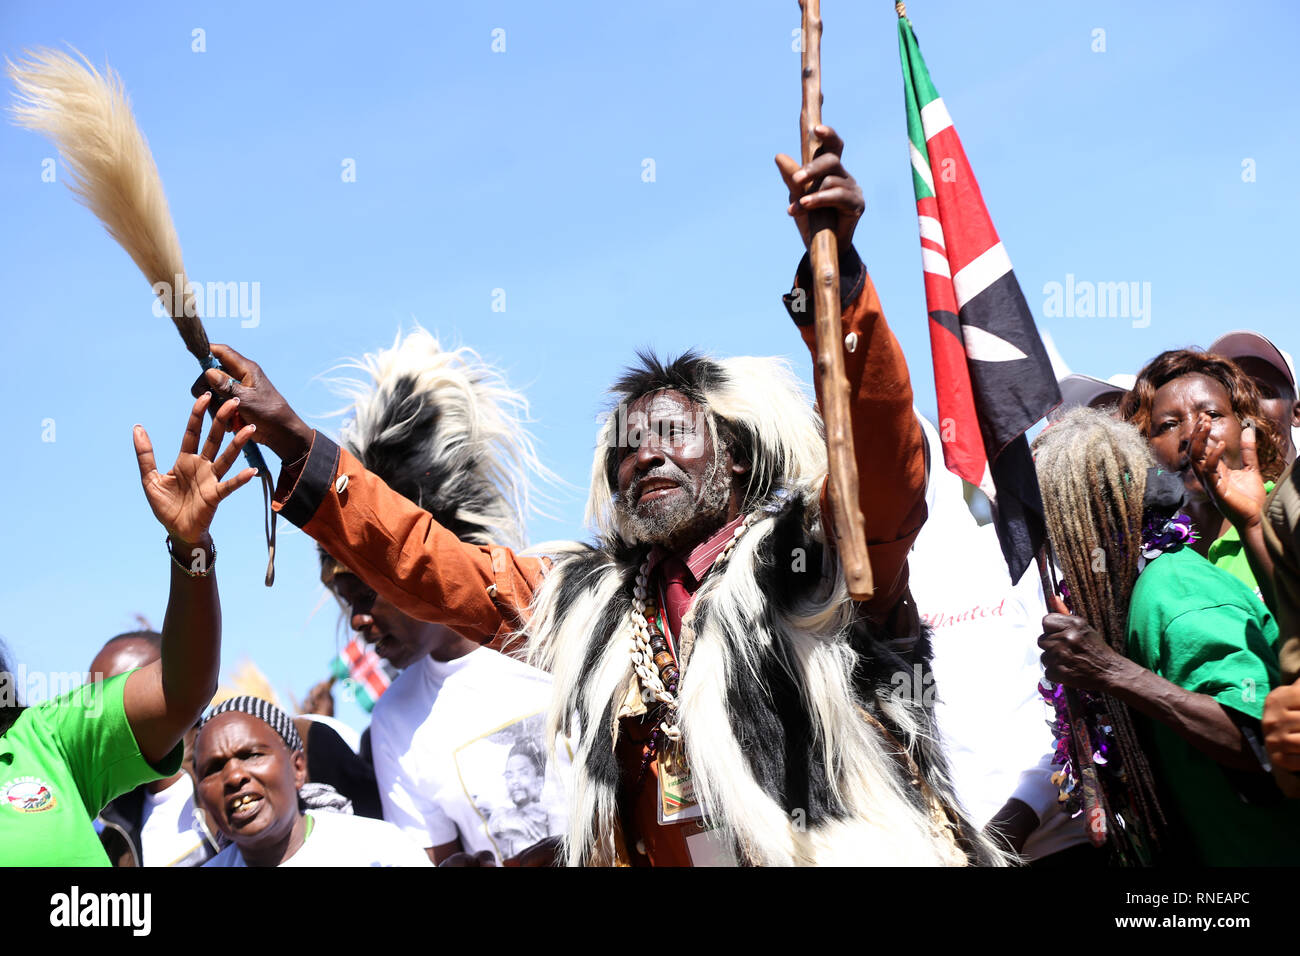 Some of the freedom fighters who pulled together under the movement seen reciting songs during the commemoration. Kenya's freedom fighters against British colonial rule called 'Mau Mau' commemorated the execution of their leader Dedan Kimathi on February 18, 1957. His body was buried at an unknown grave, widow Mukami Kimathi wants his grave disclosed and remains exhumed for a decent burial. - Stock Image